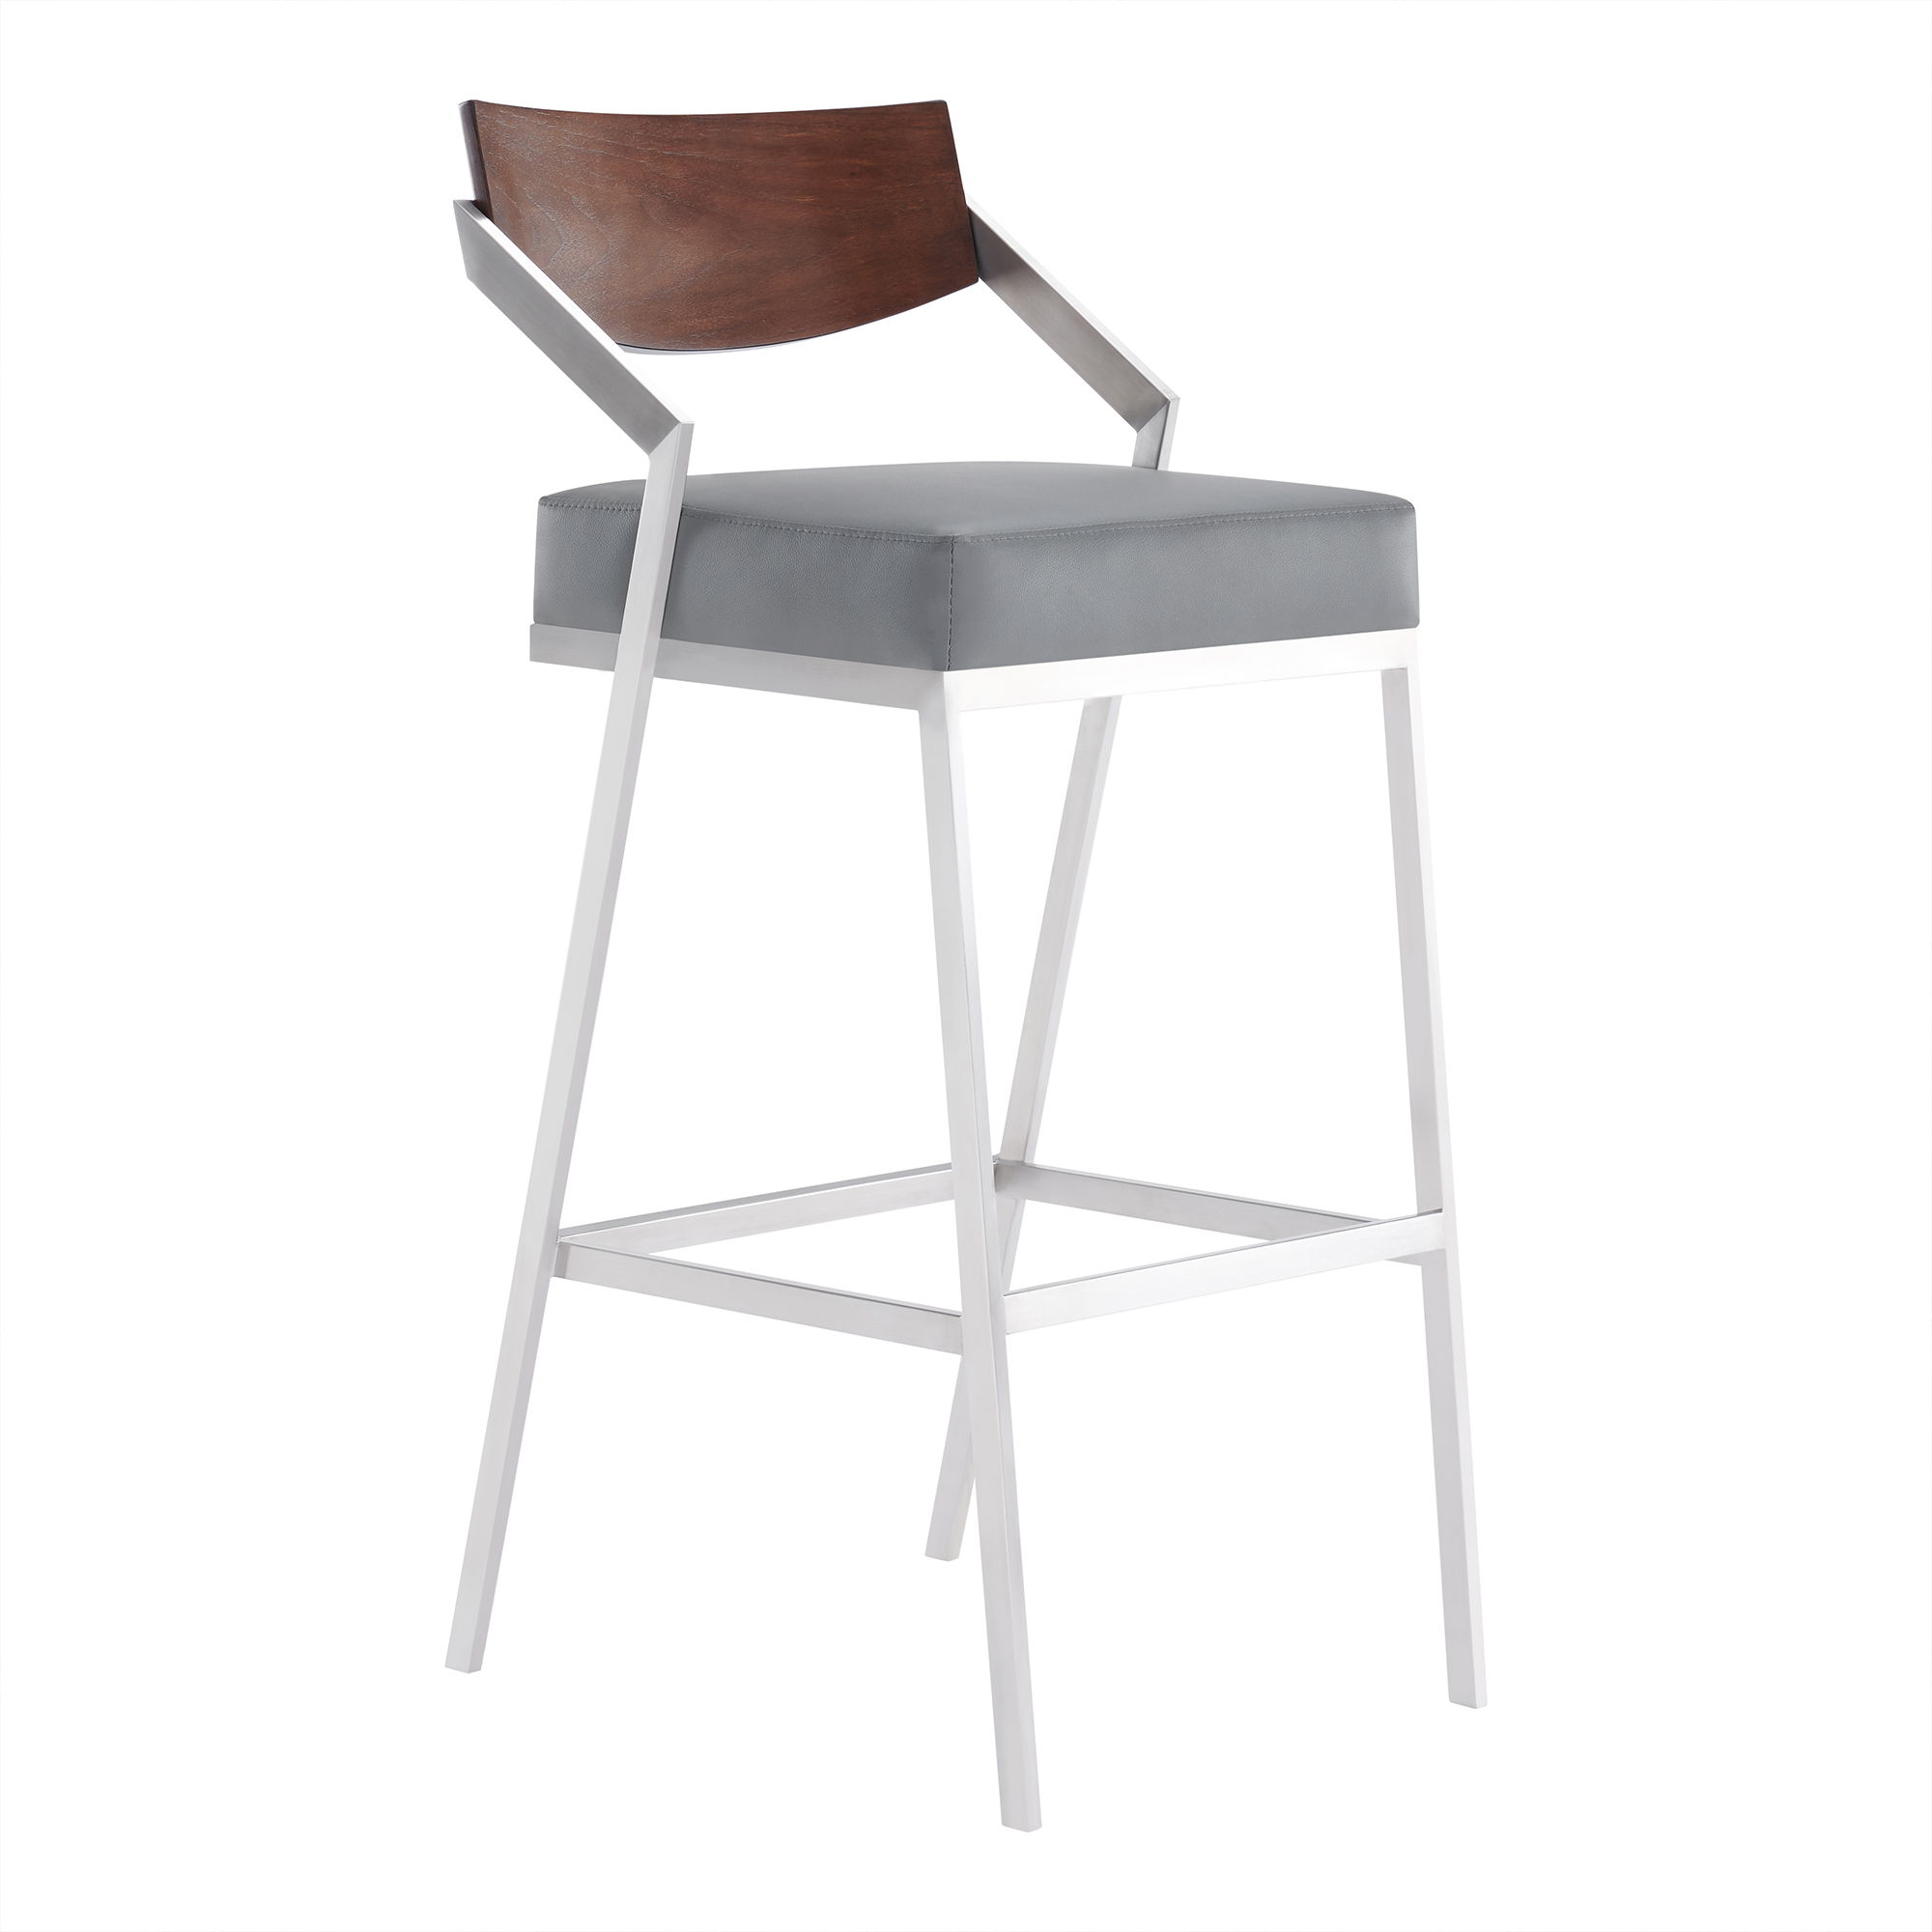 Miraculous Armen Living Dakota Grey Faux Leather Counter Height Bar Stool Gmtry Best Dining Table And Chair Ideas Images Gmtryco